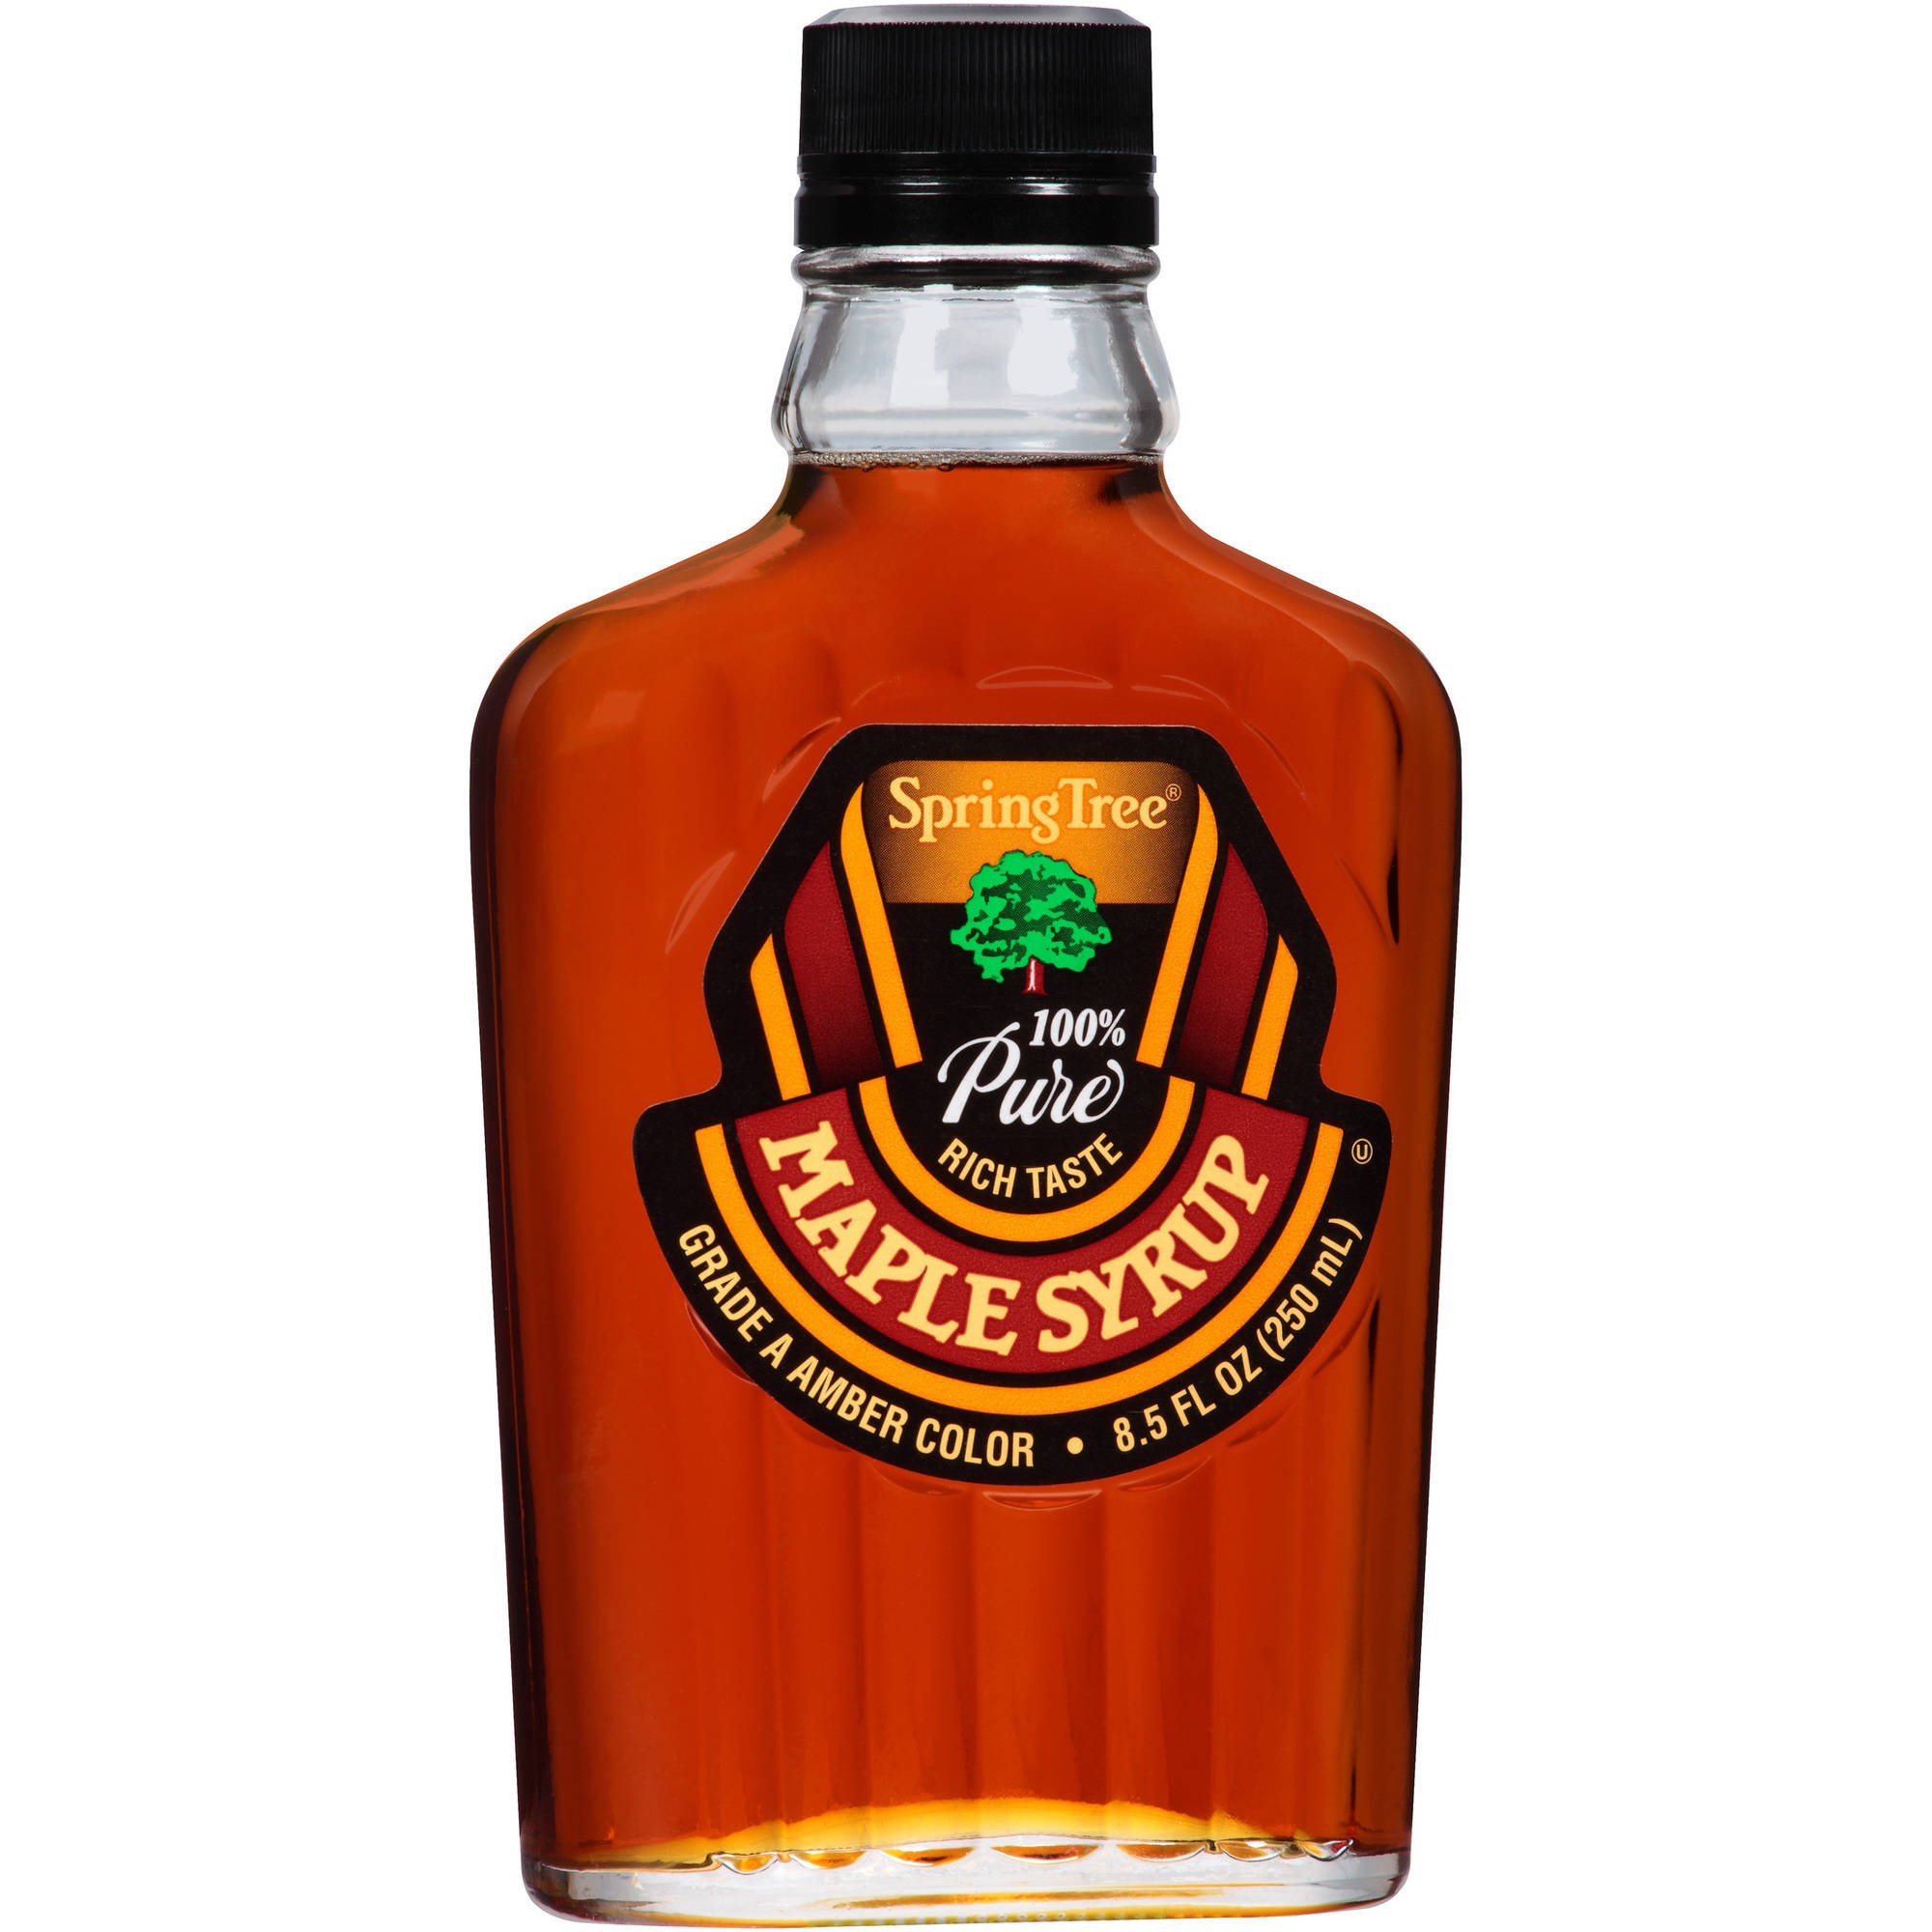 Spring Tree 100% Pure Maple Syrup, 8.5 fl oz